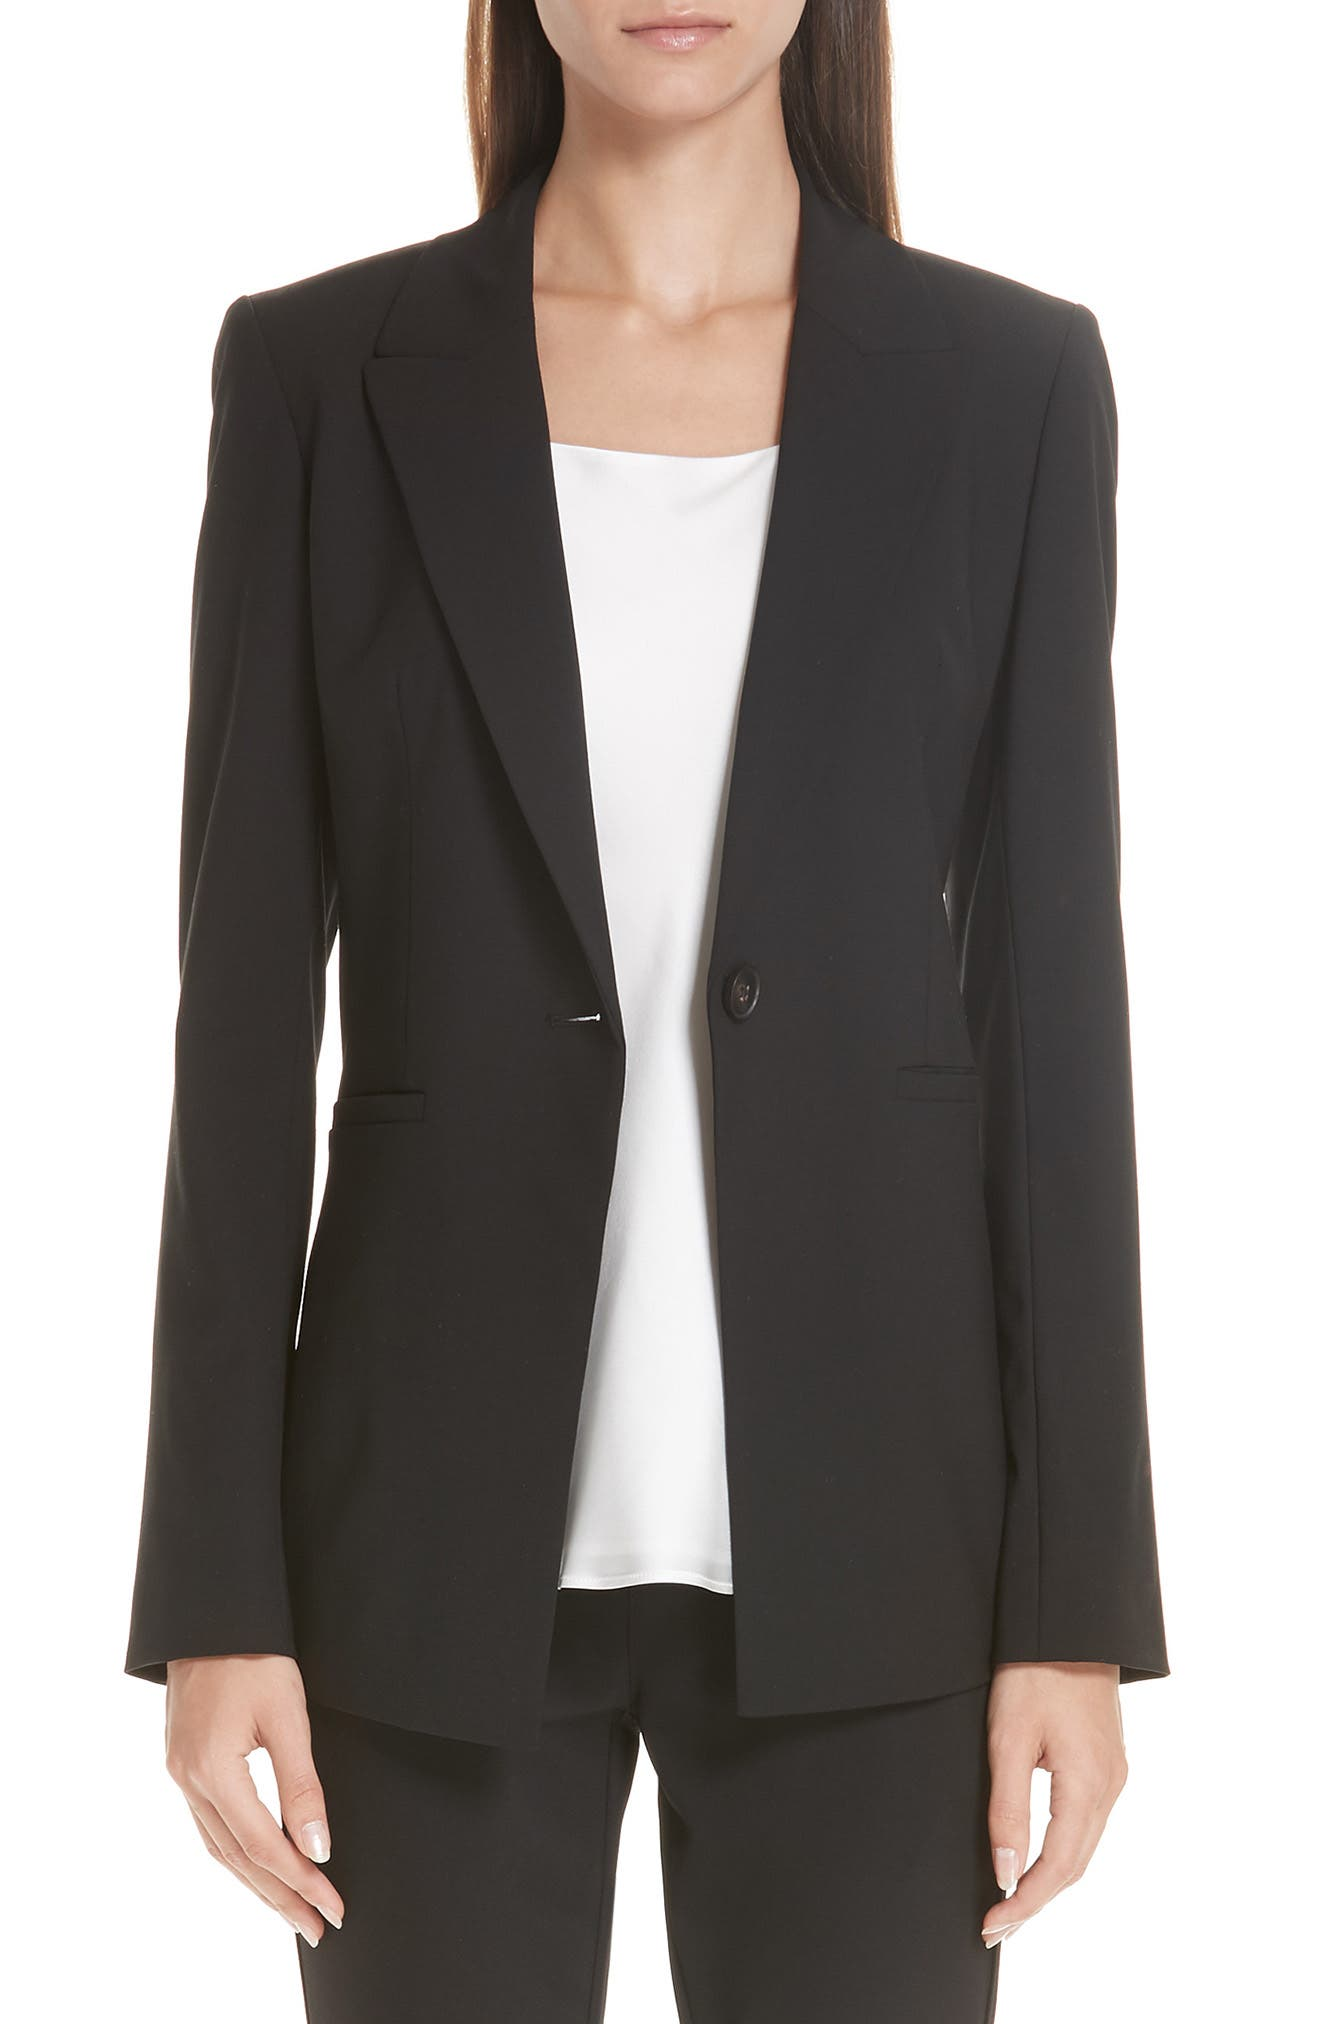 LAFAYETTE 148 NEW YORK, Charice Stretch Wool Jacket, Main thumbnail 1, color, BLACK